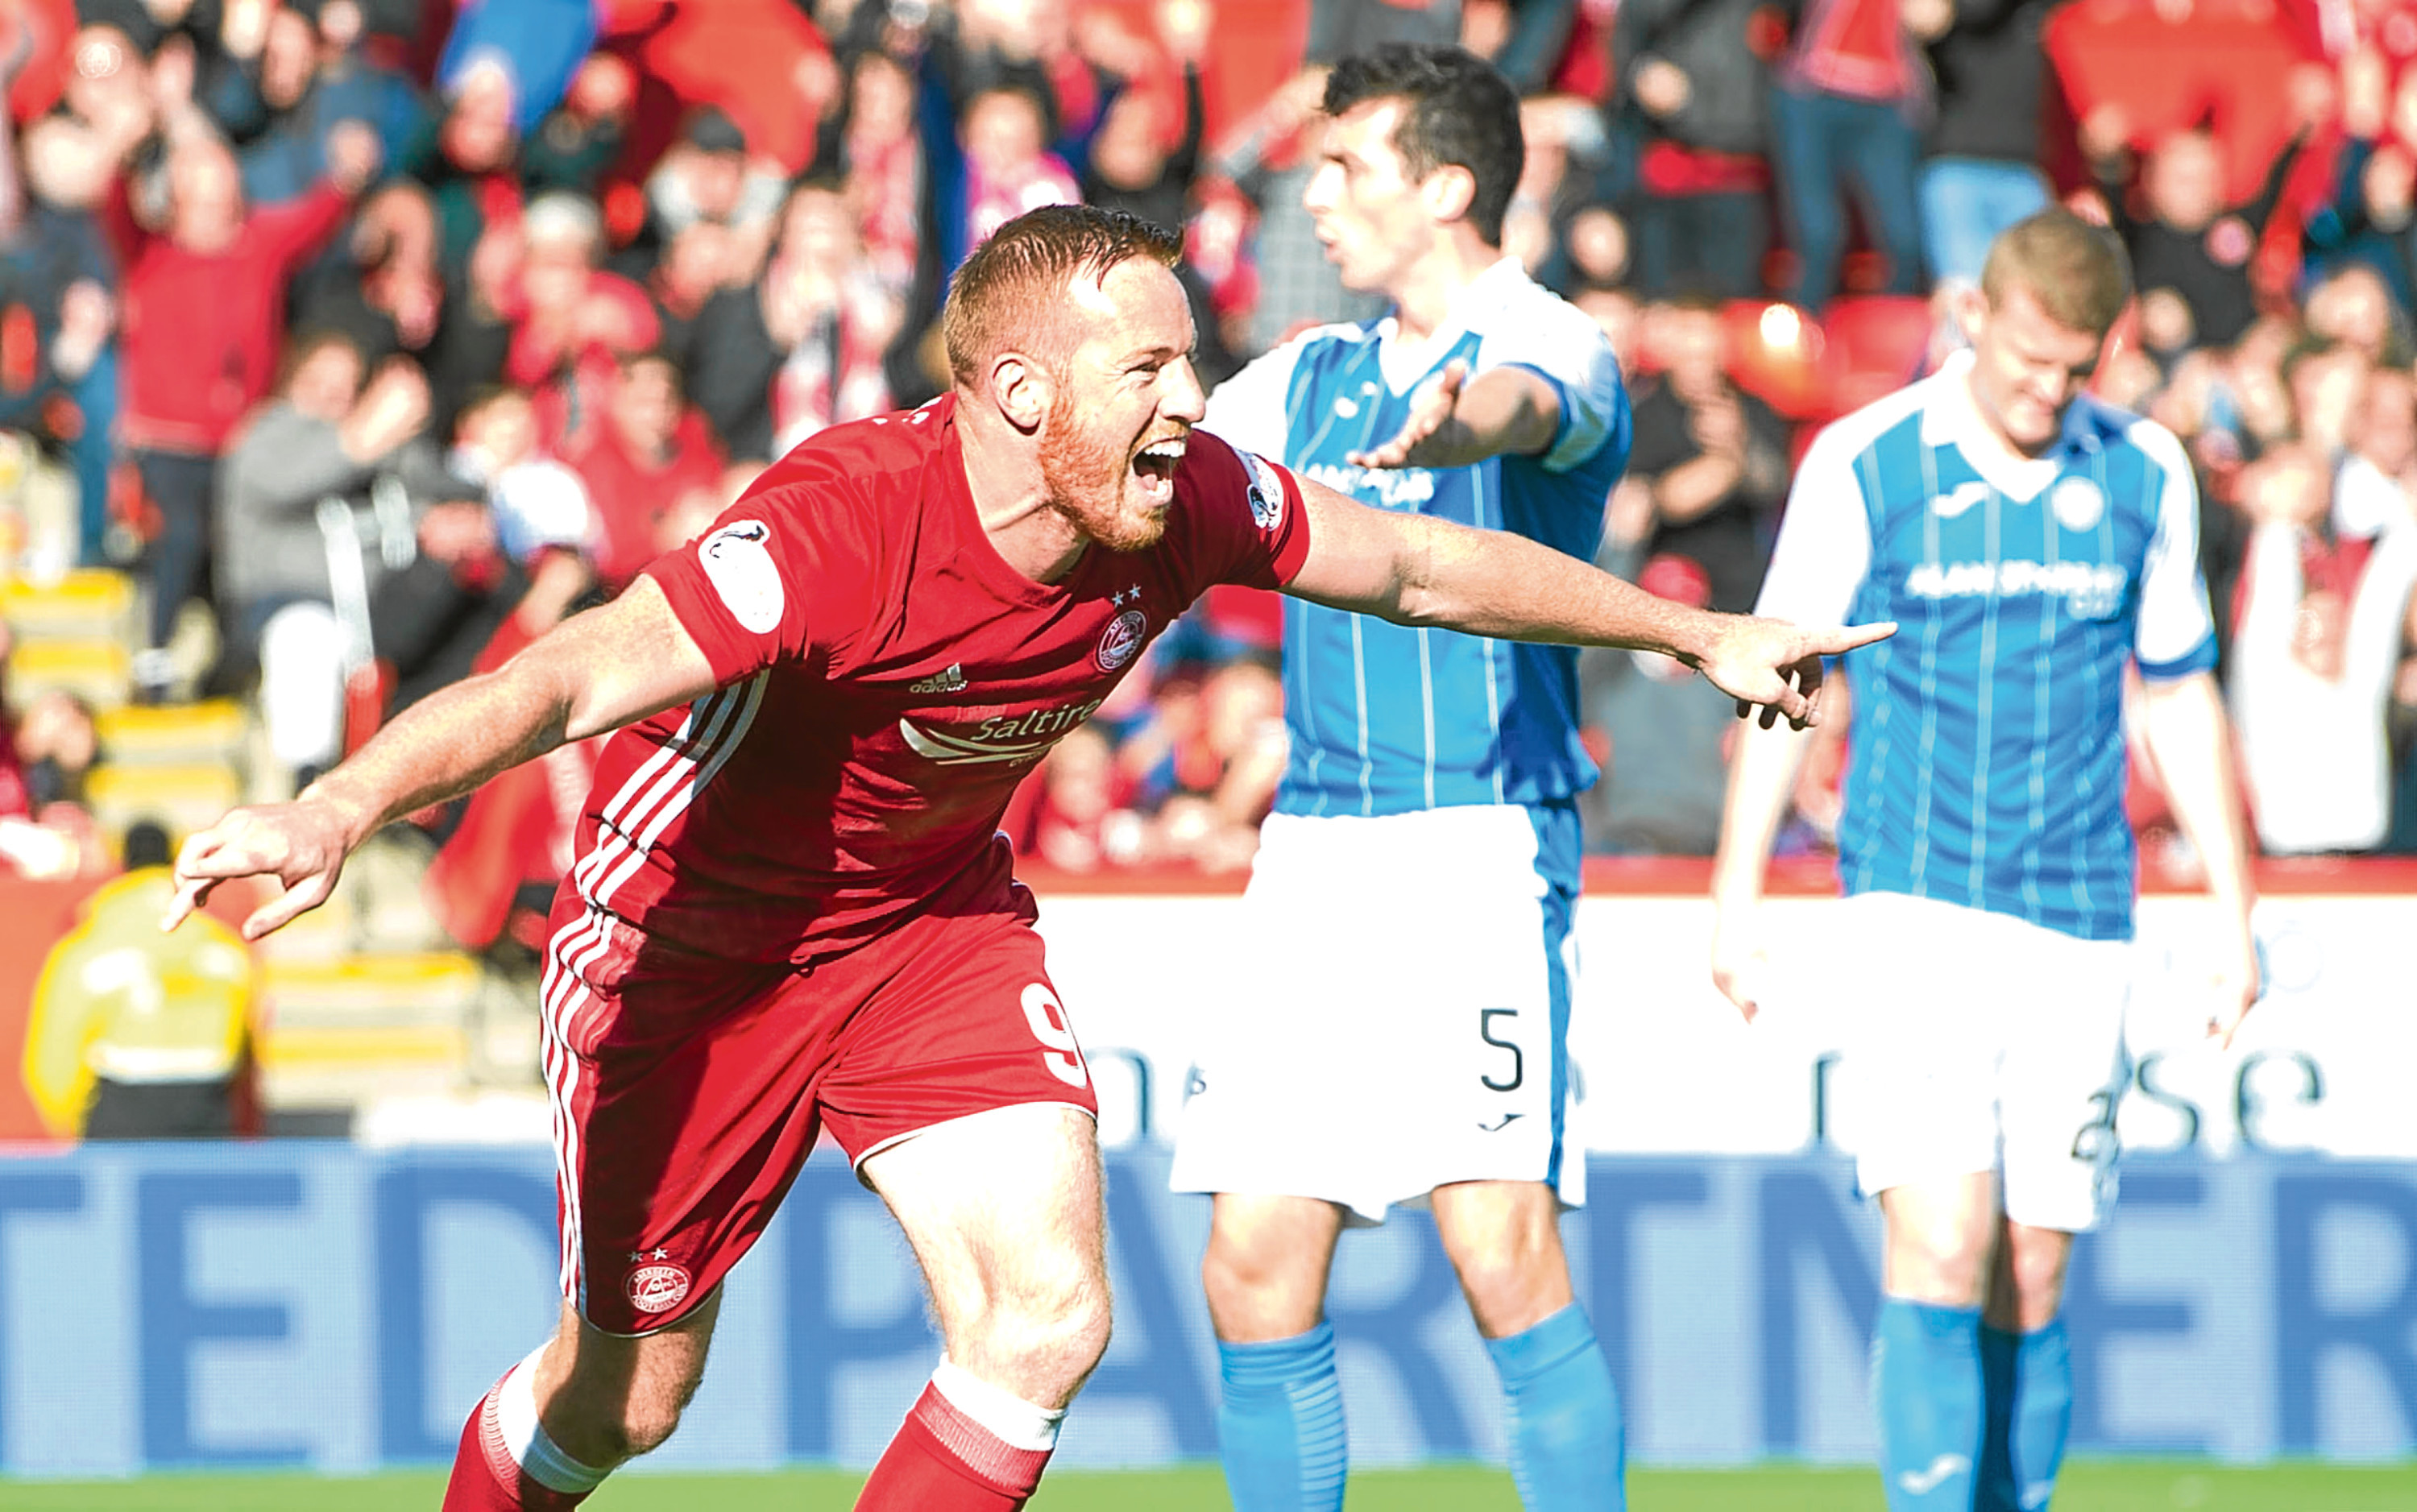 Aberdeen's Adam Rooney celebrates scoring against St Johnstone.